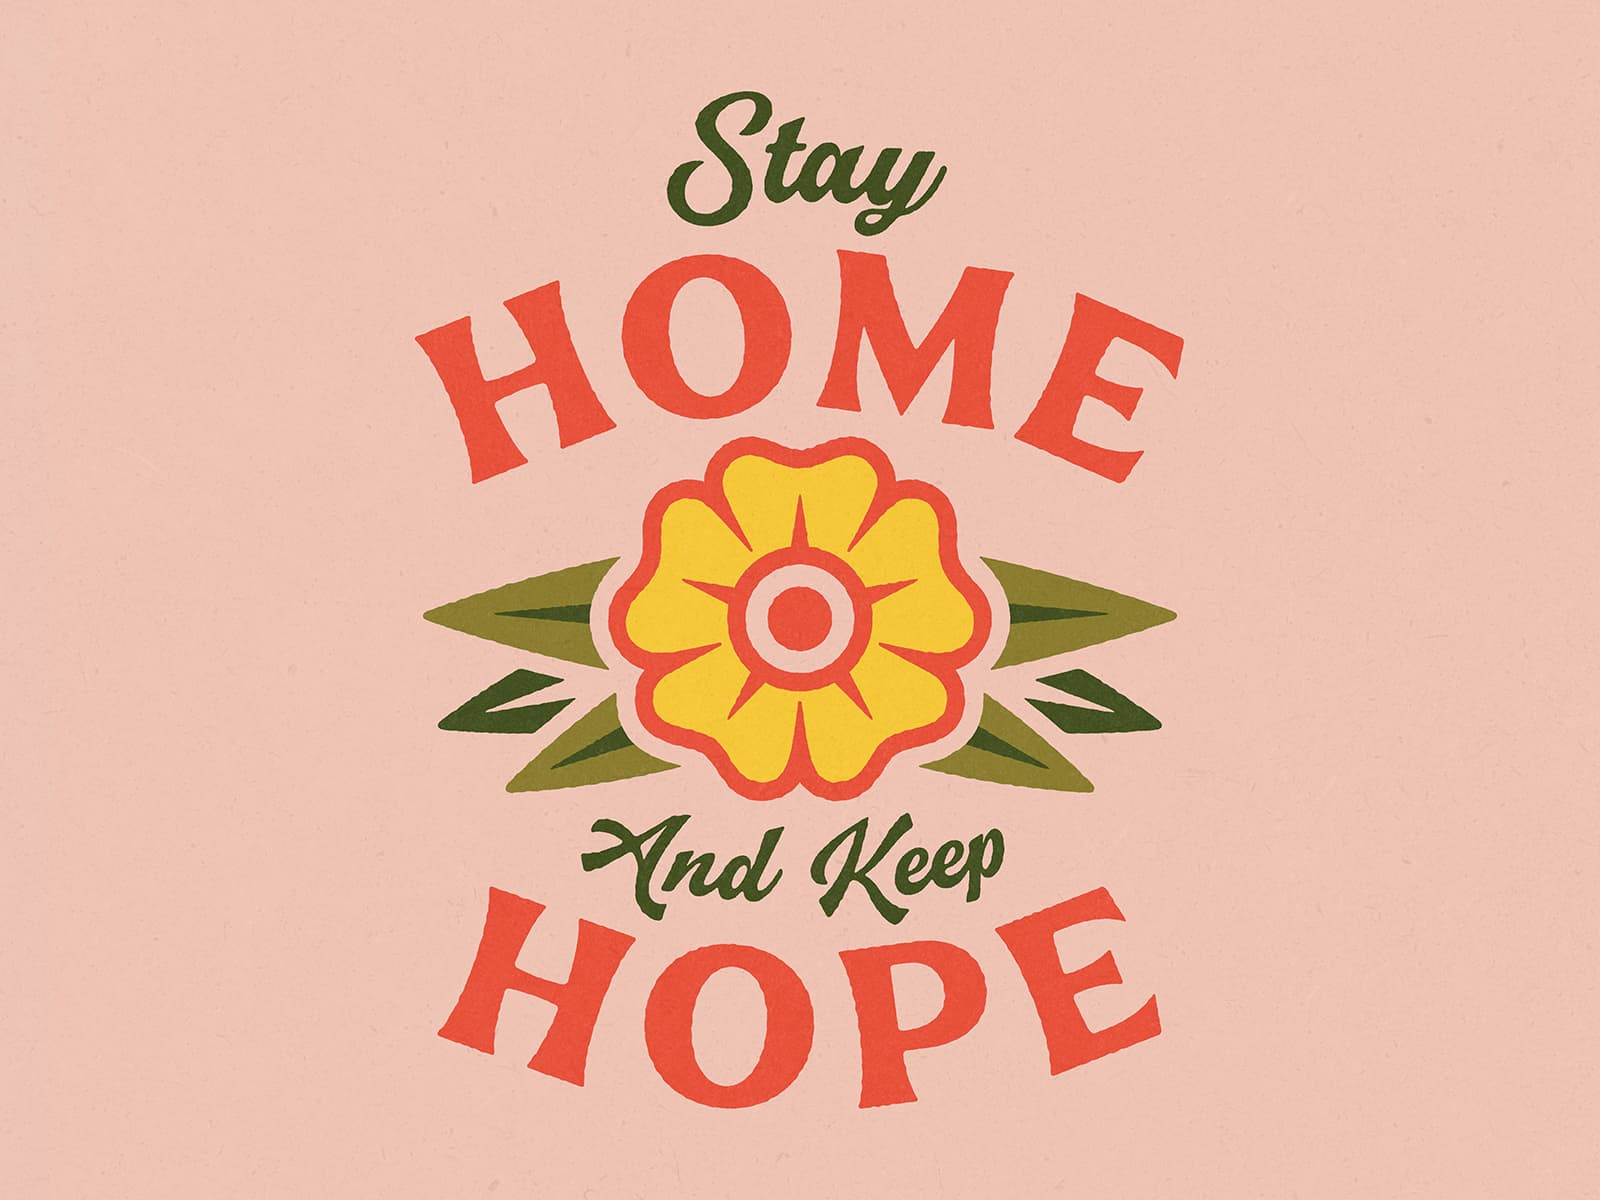 Stay Home, Keep Hope by Tracy Niven